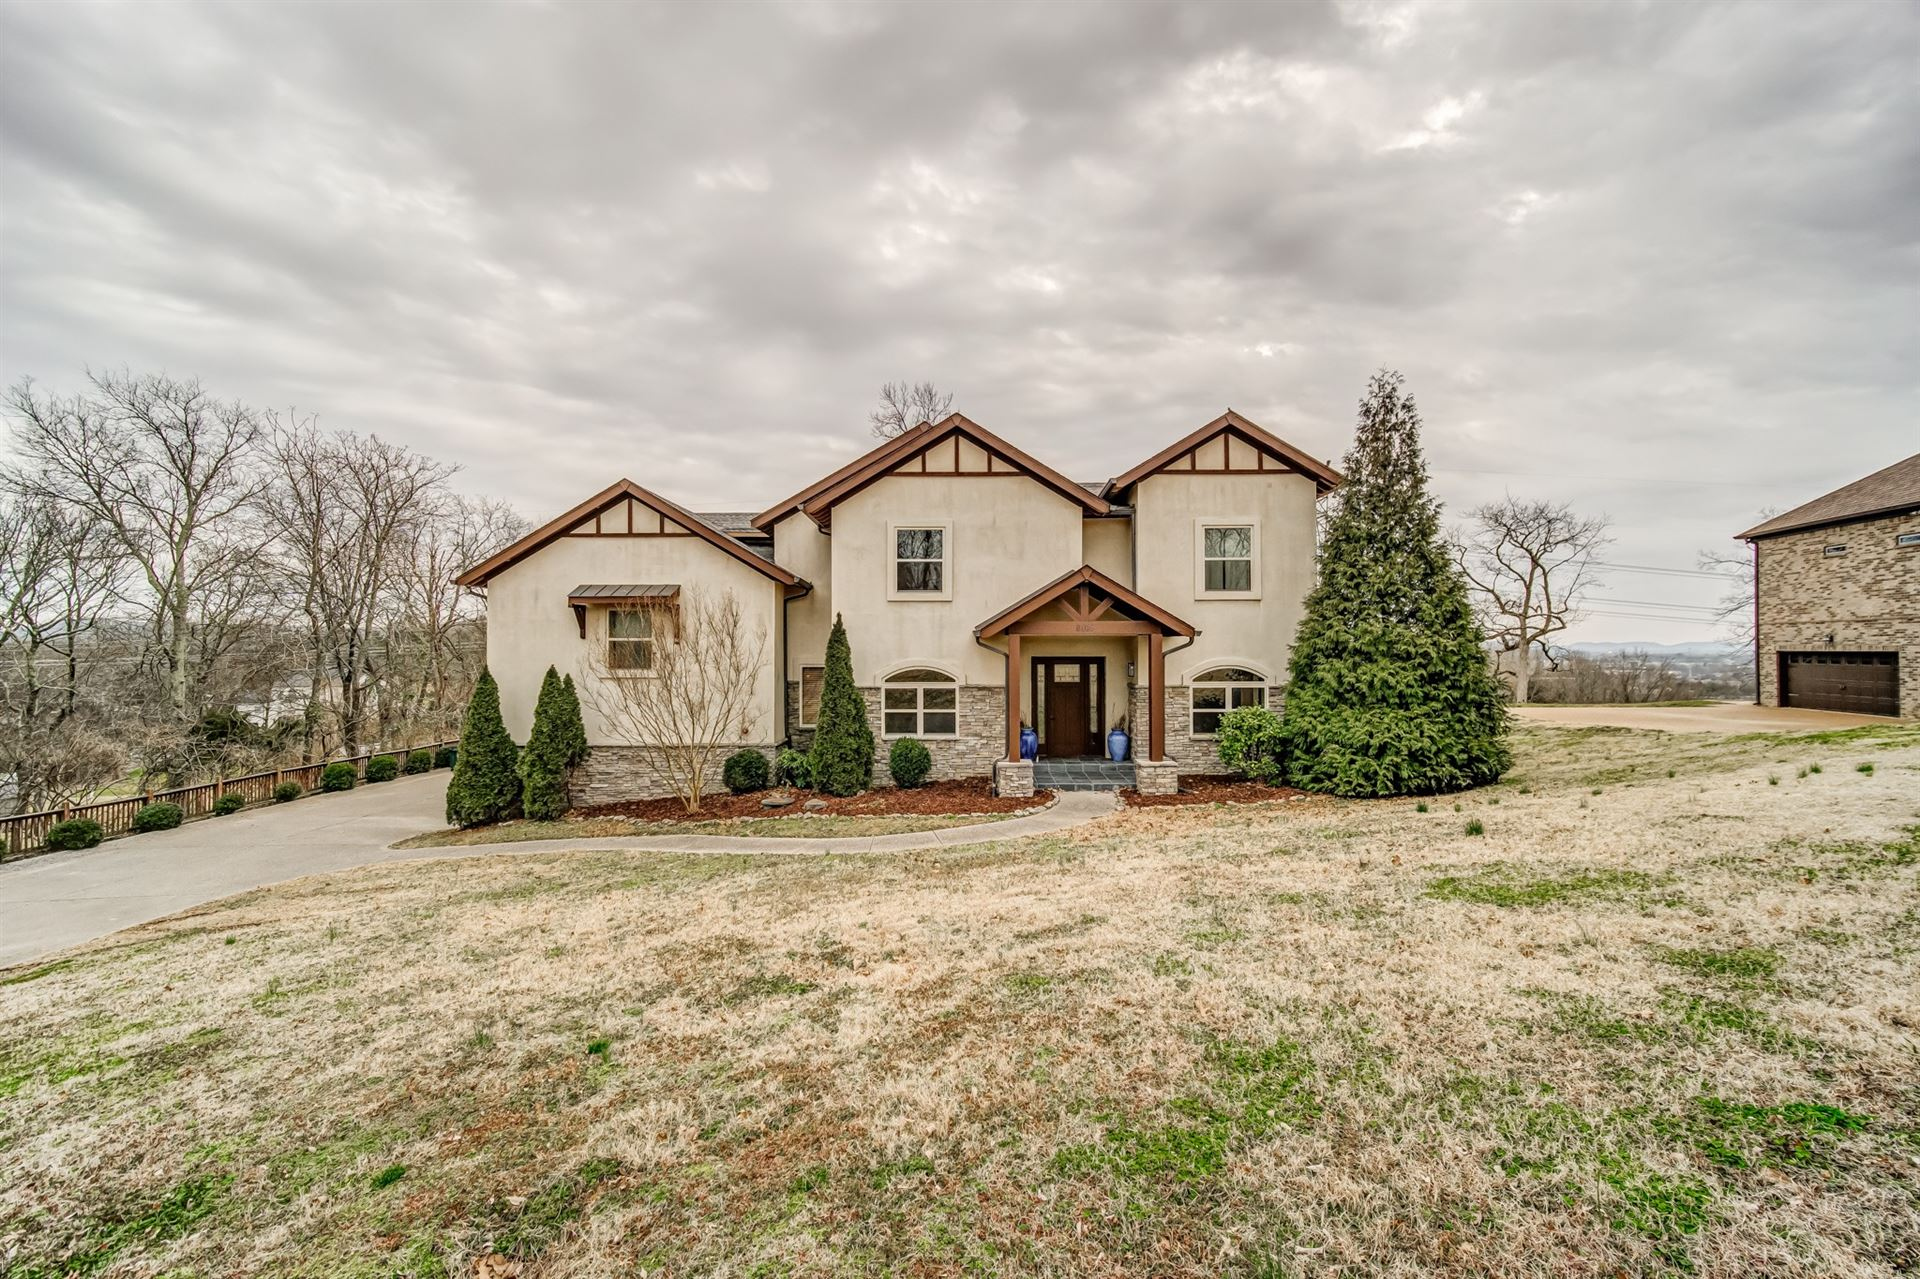 Photo of 8109 Hilldale Dr, Brentwood, TN 37027 (MLS # 2228648)